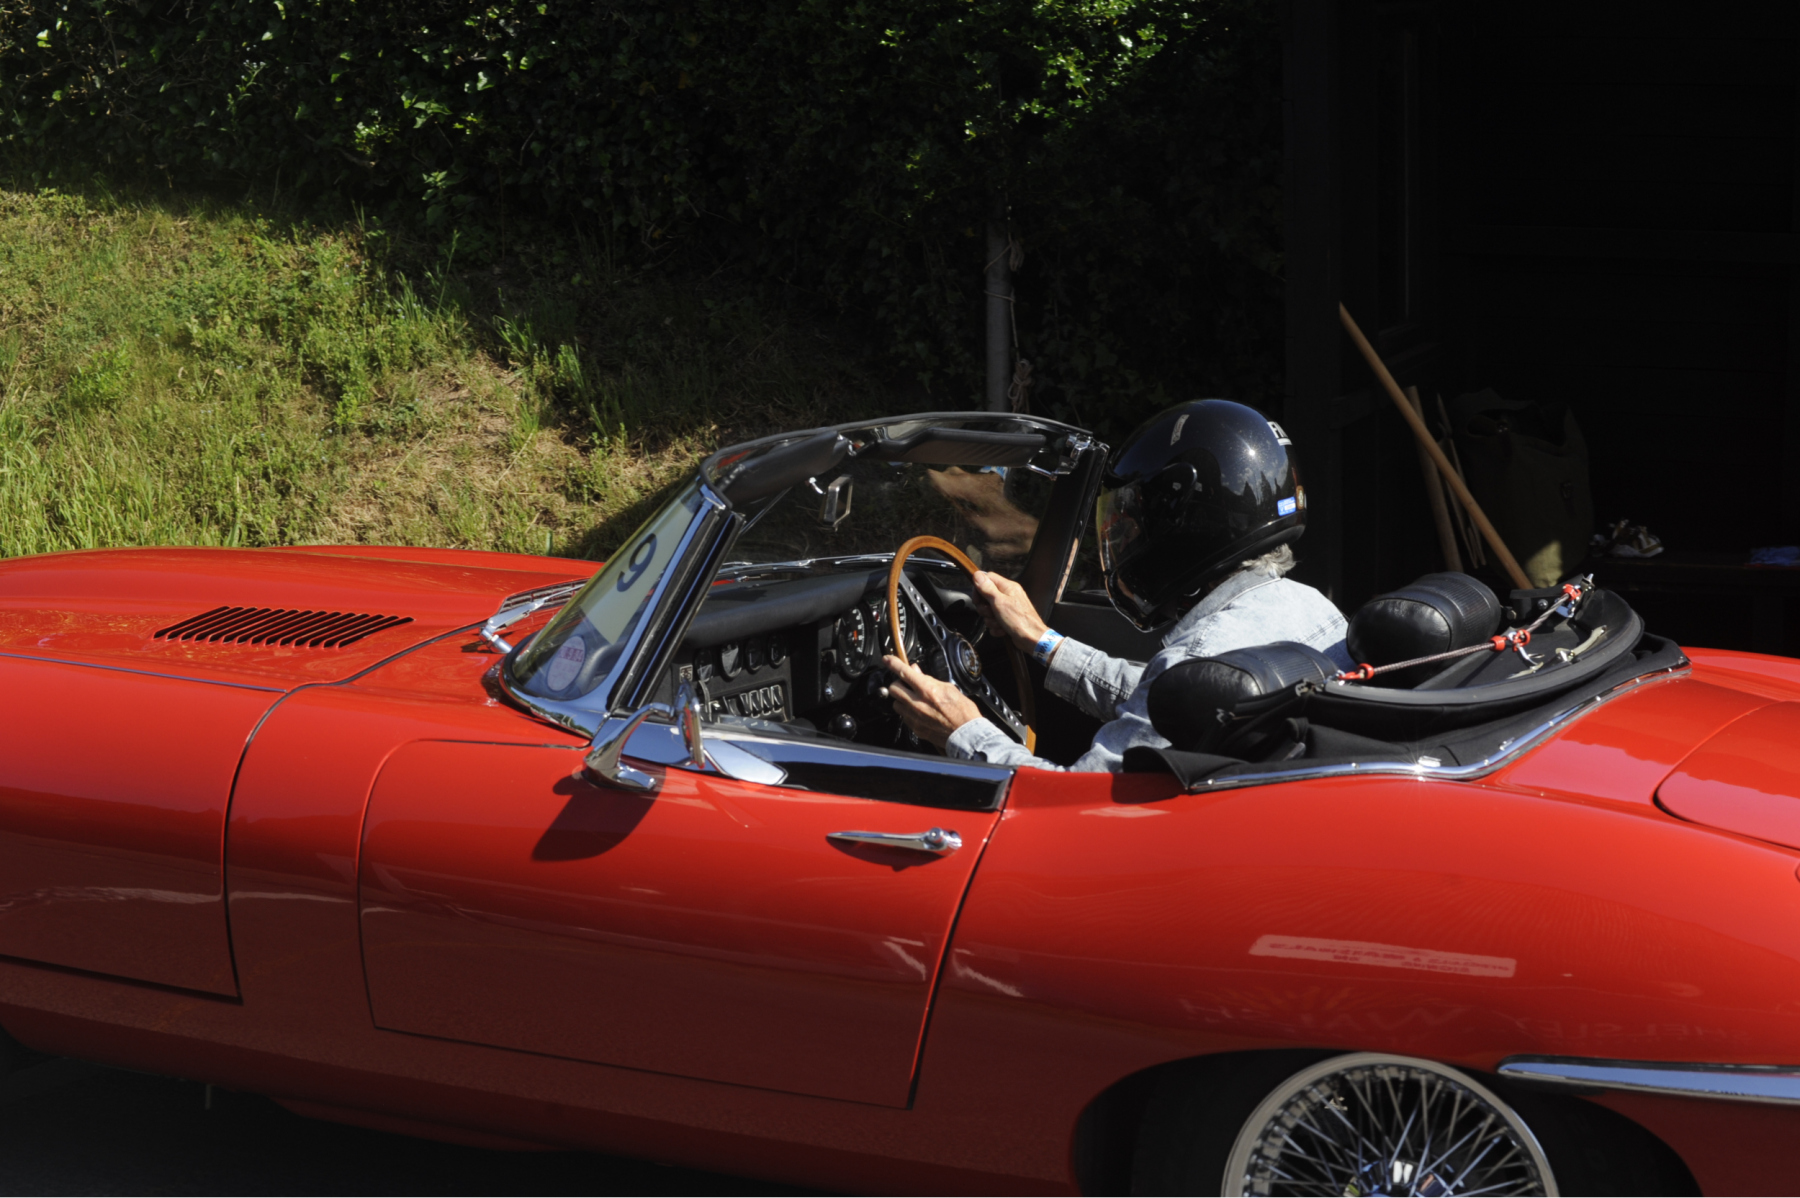 E-type-60-Saturday-photo-by-Abigail-Humphries-21